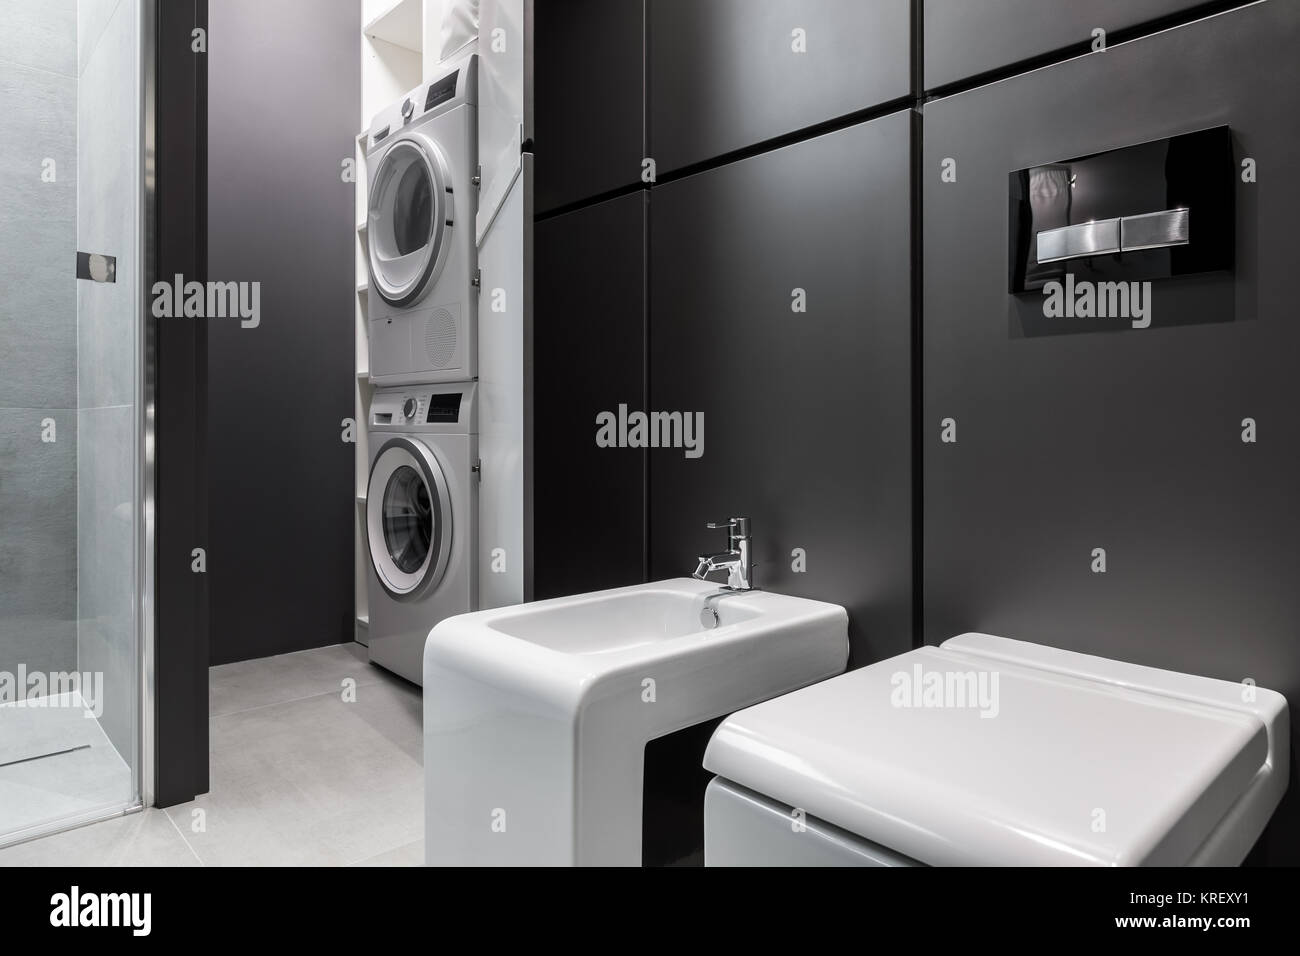 Laundry Space With Washing Machine And Dryer In Modern Bathroom